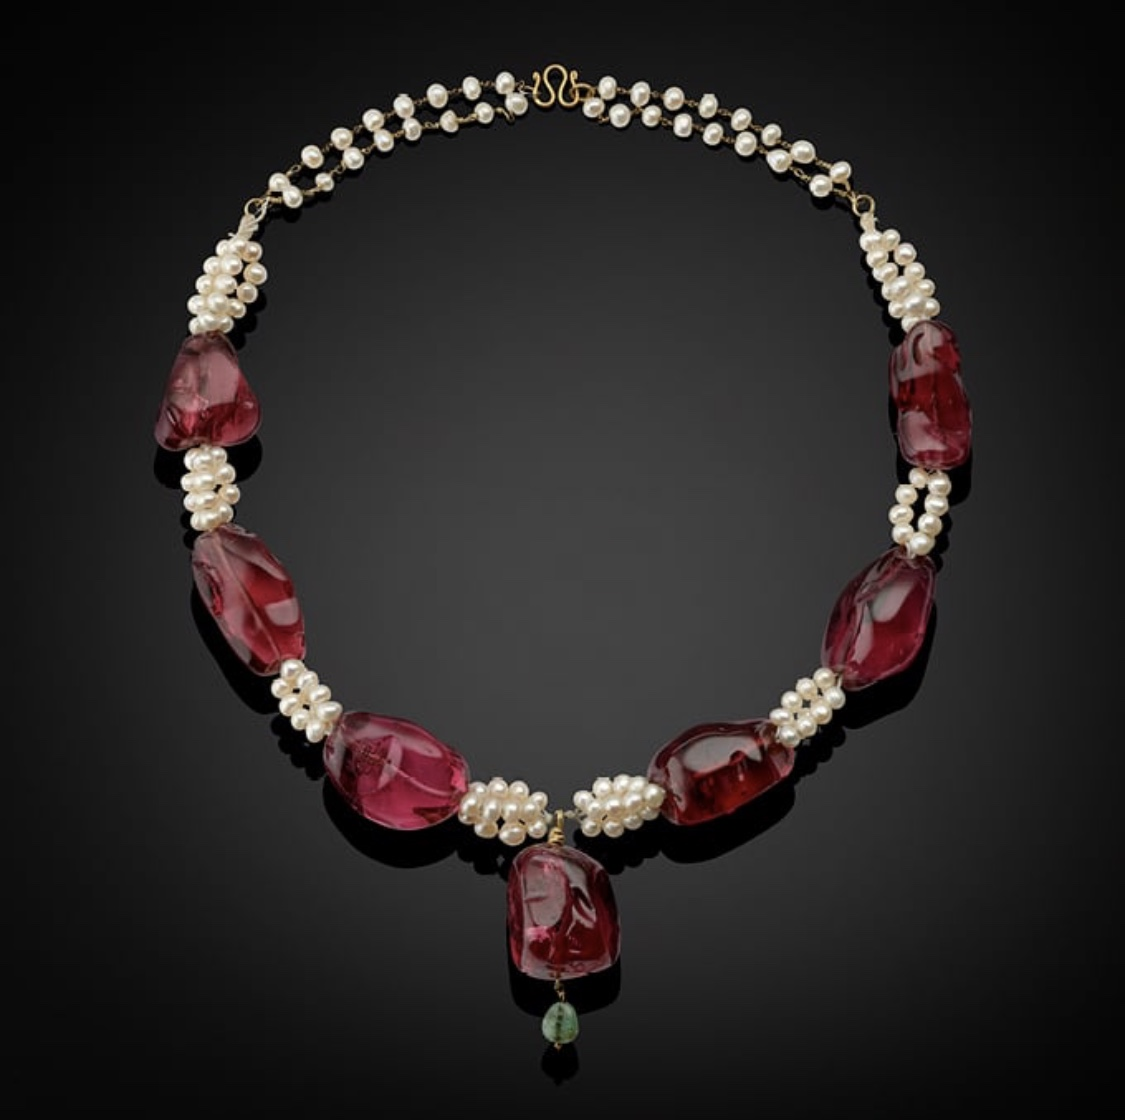 Antique imperial spinel, pearl and emerald necklace.  Photo source: christies.com